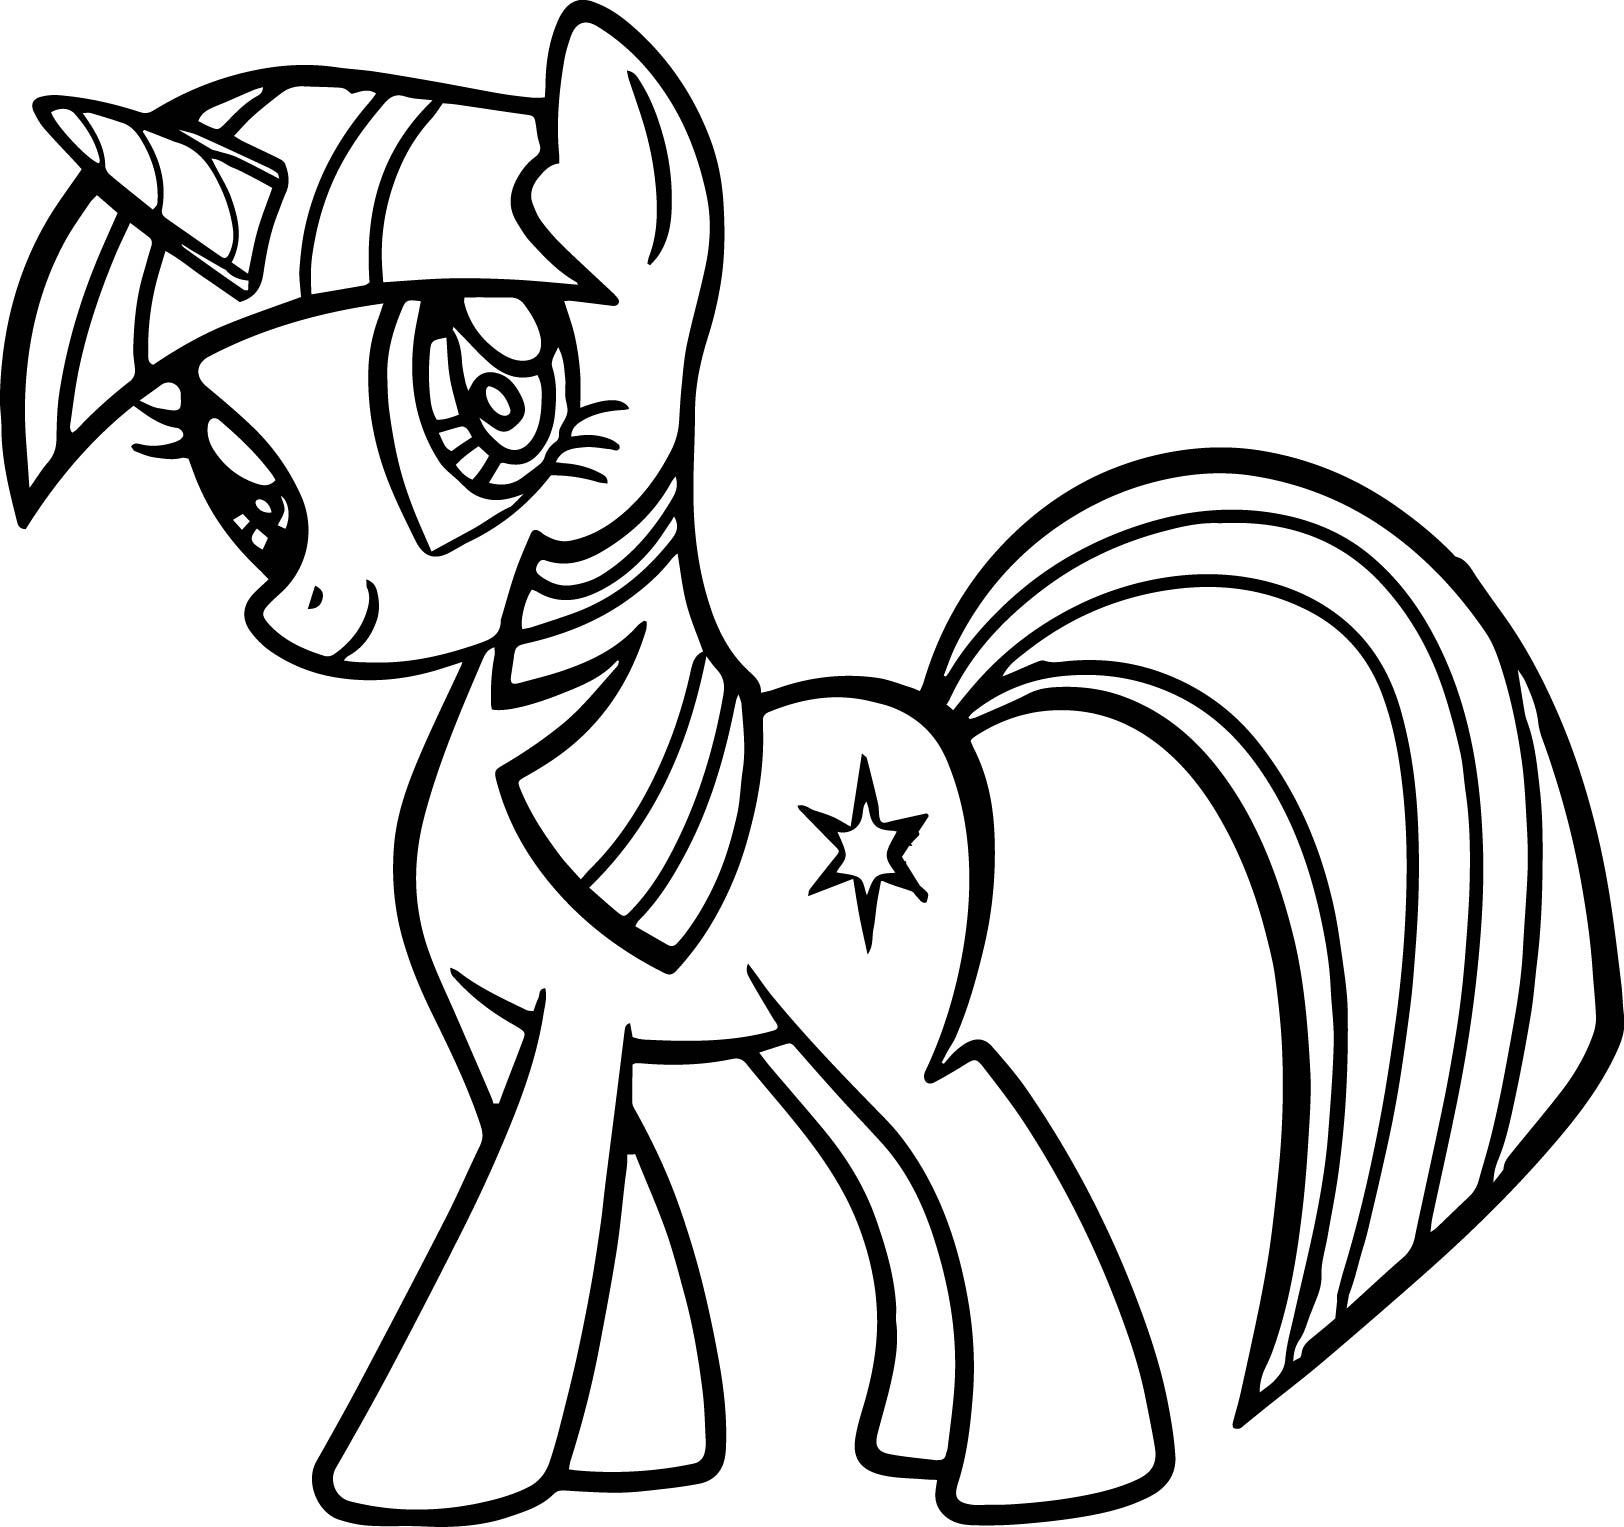 little pony coloring pages - cute little pony coloring page